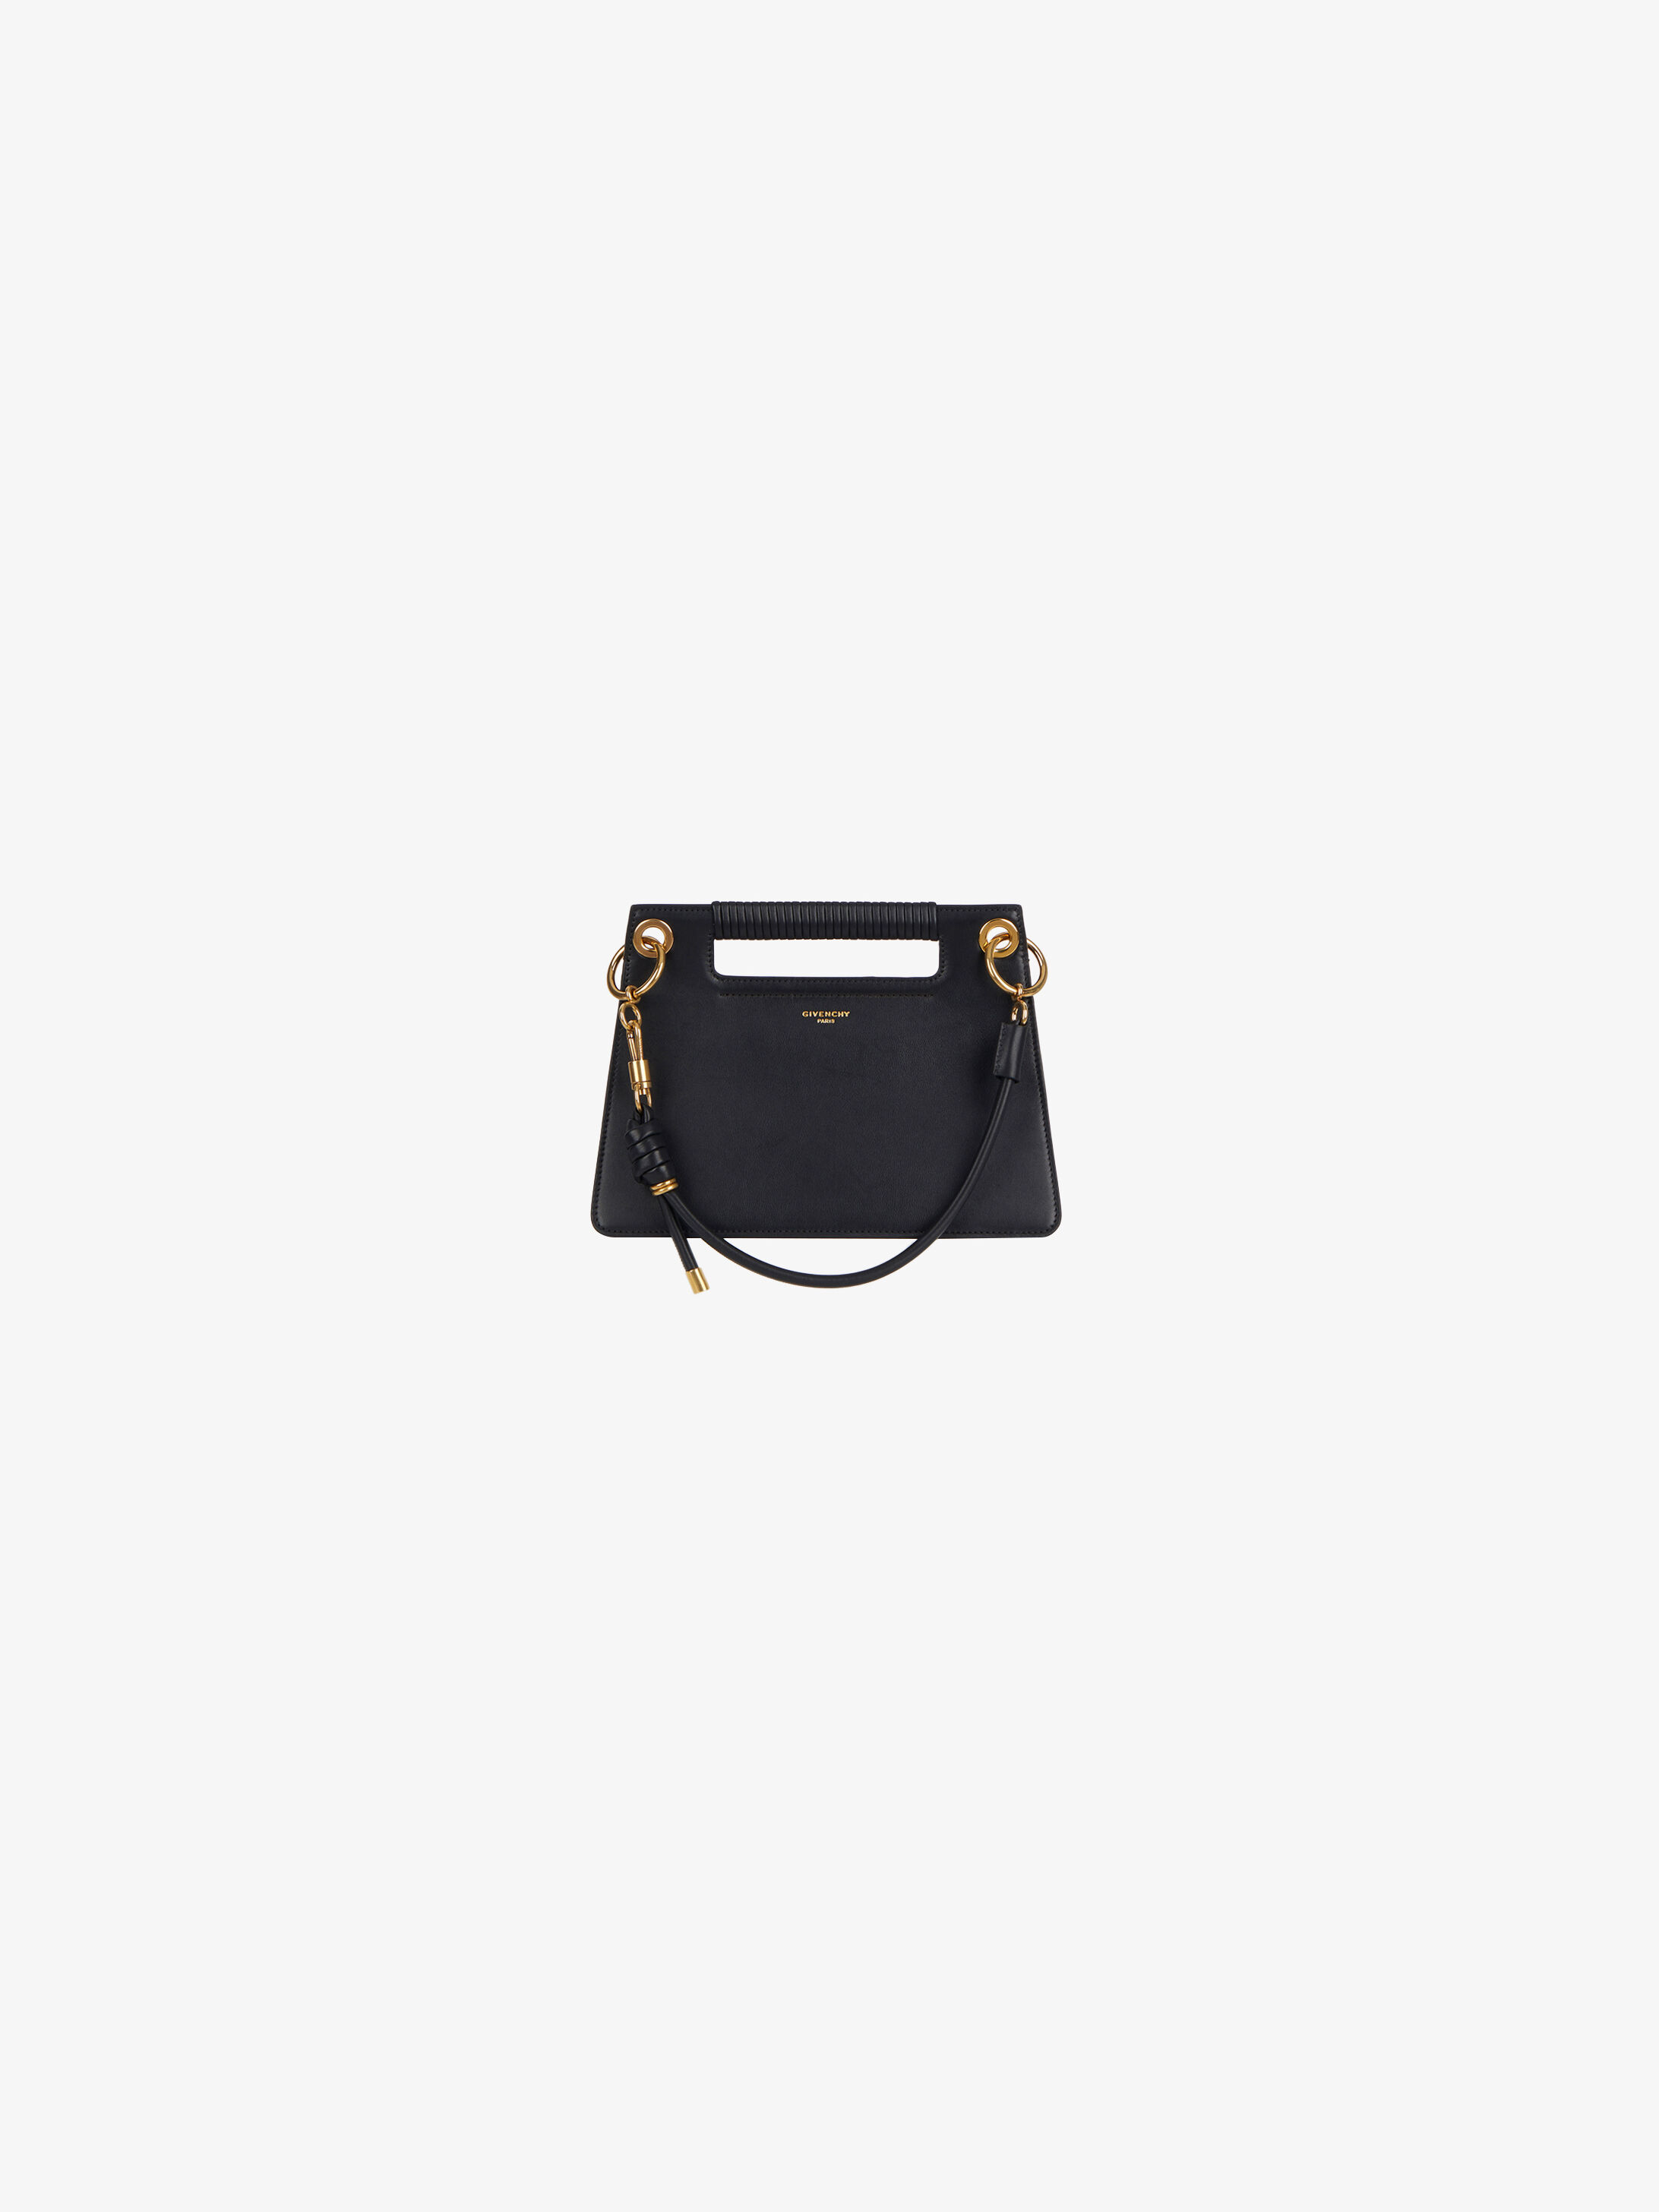 e15099affe Women's Handbags collection by Givenchy. | GIVENCHY Paris